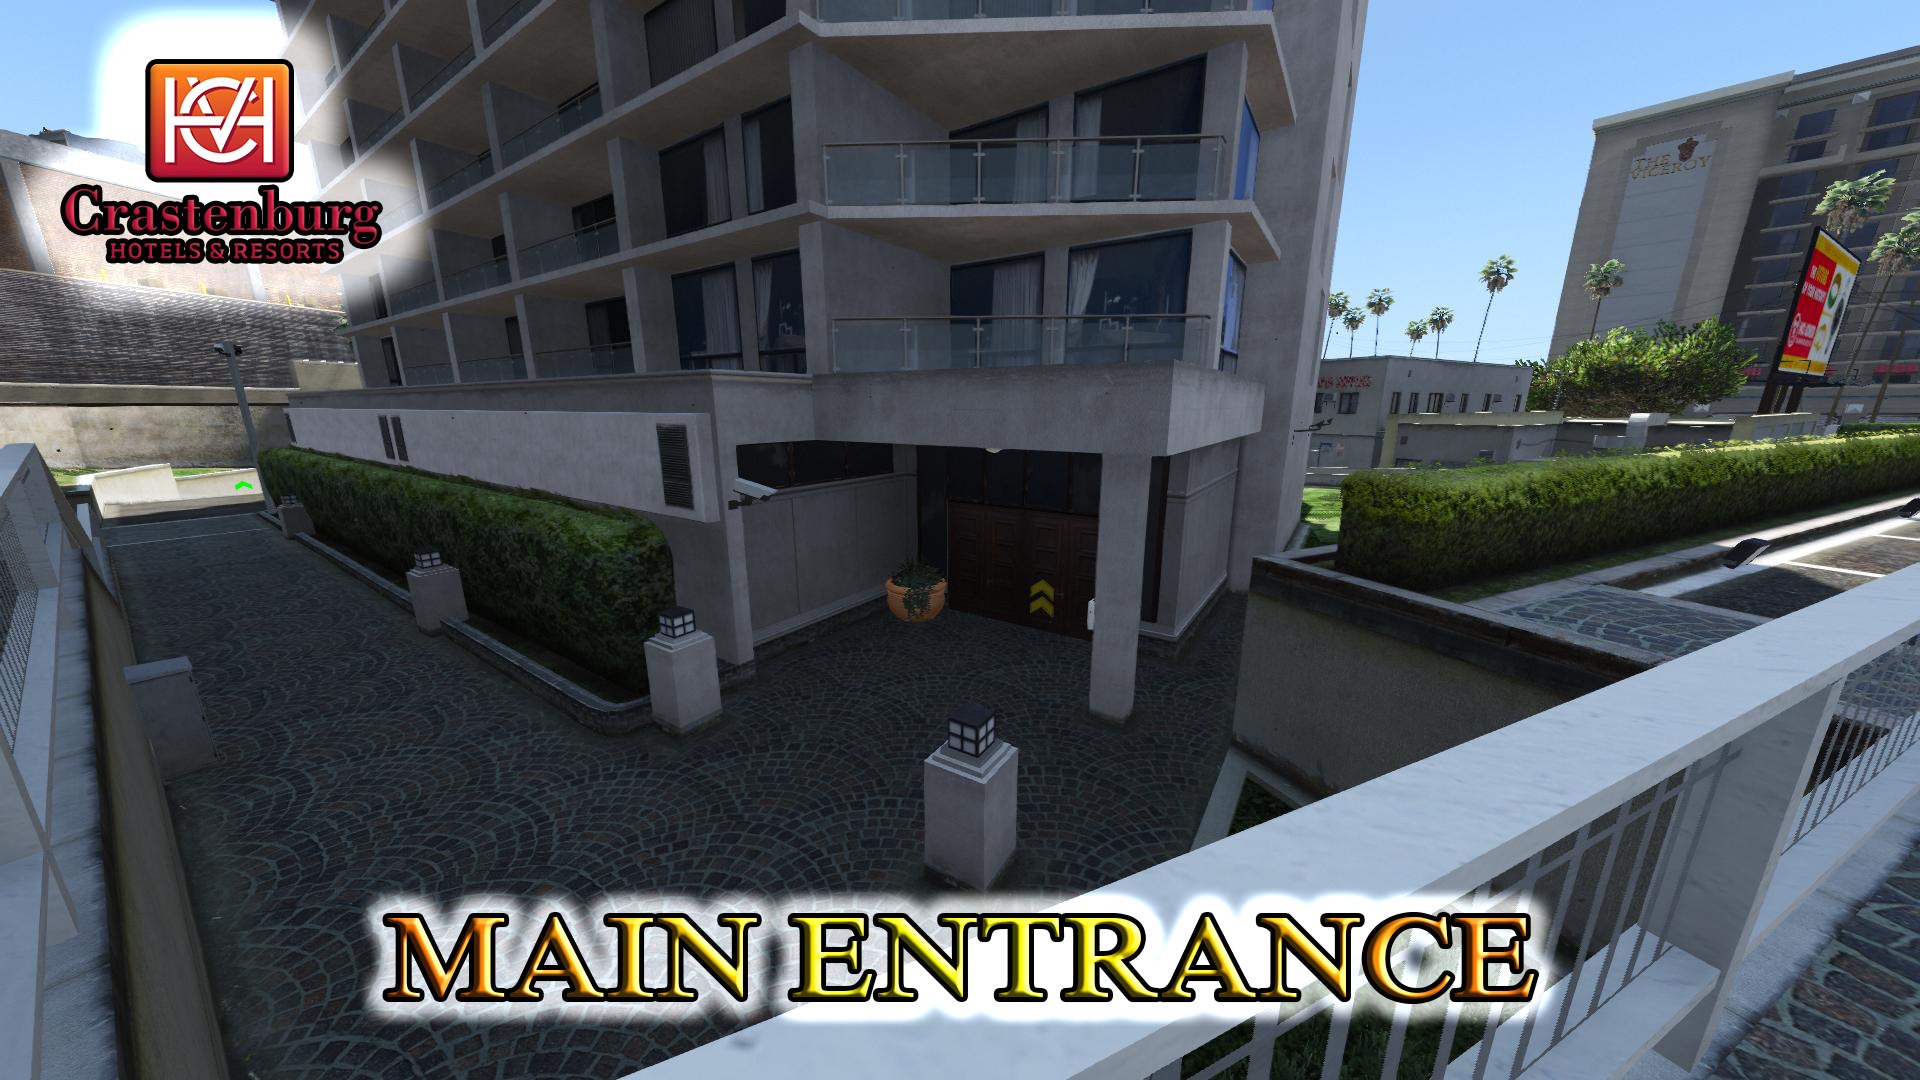 von crastenburg h r apartment 12b gta5 mods com rh gta5 mods com